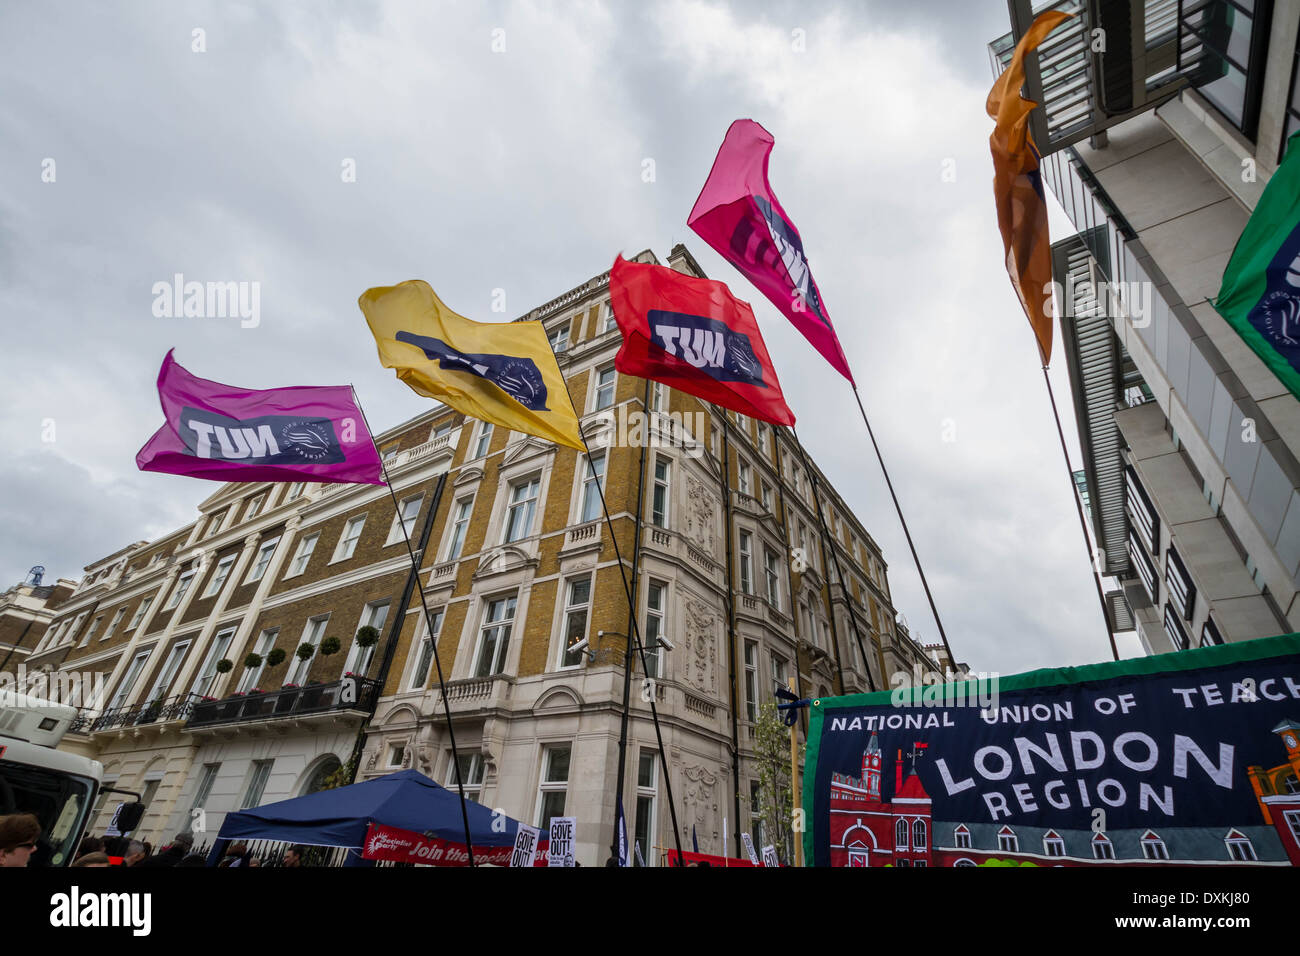 Thousands of teachers and supporters march through London on NUT Strike Day - Stock Image